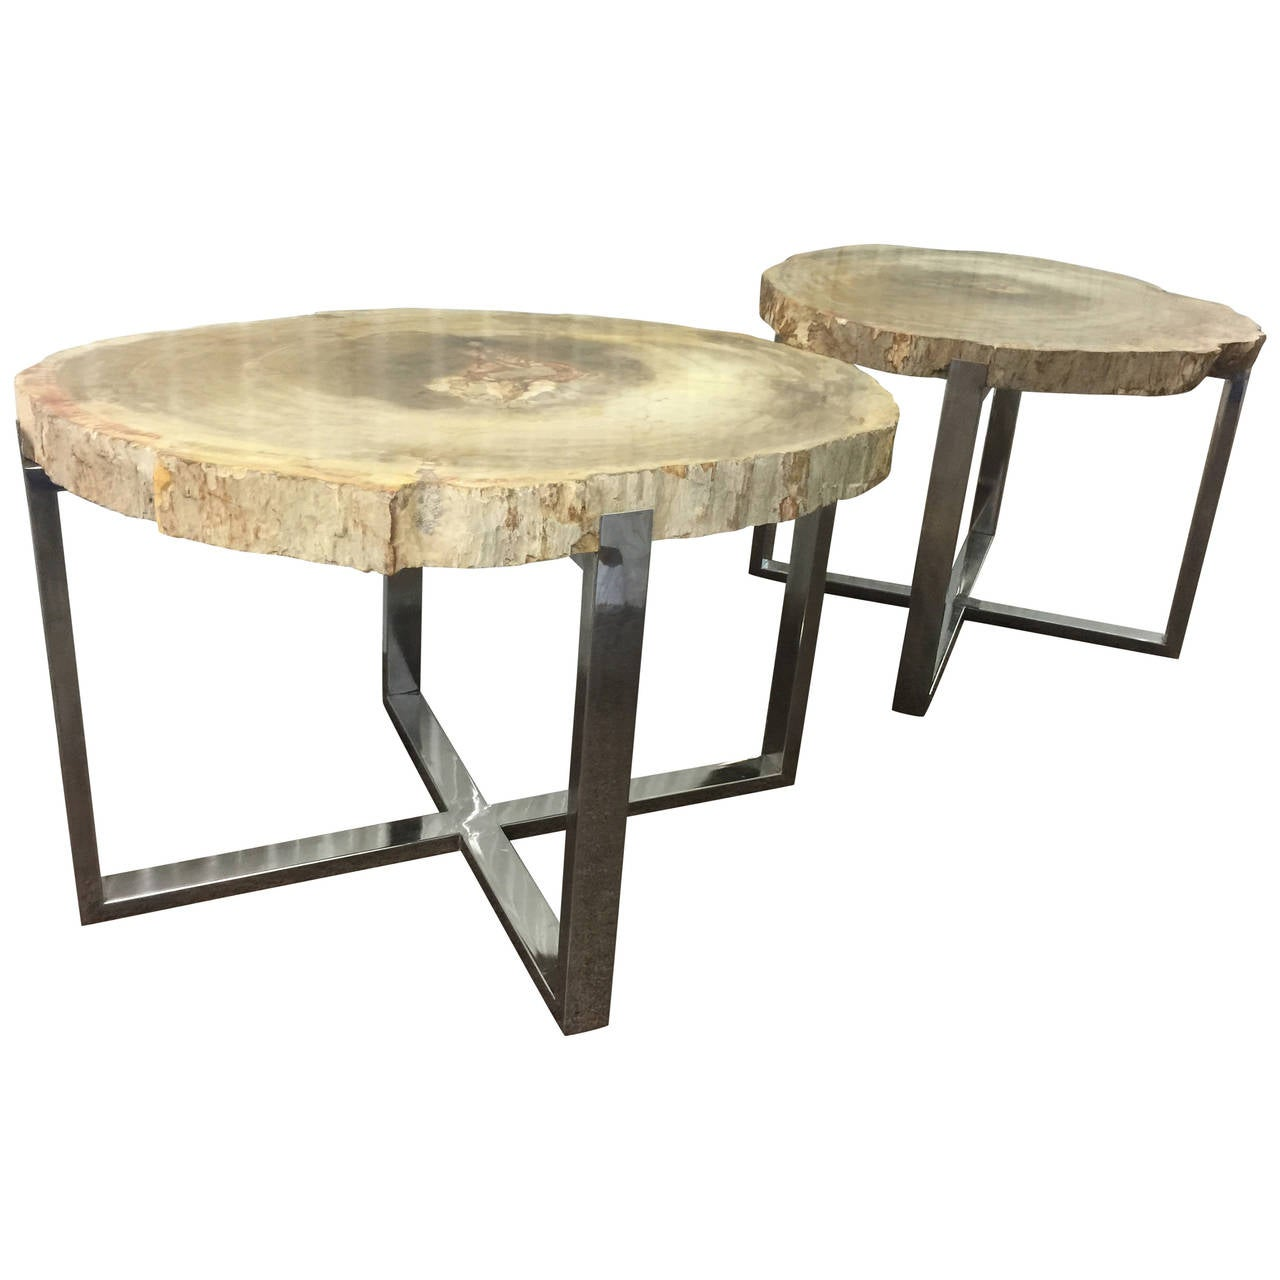 Wonderful image of  Style Pair of Petrified Wood Salmon Colored X Base Tables at 1stdibs with #887243 color and 1280x1280 pixels